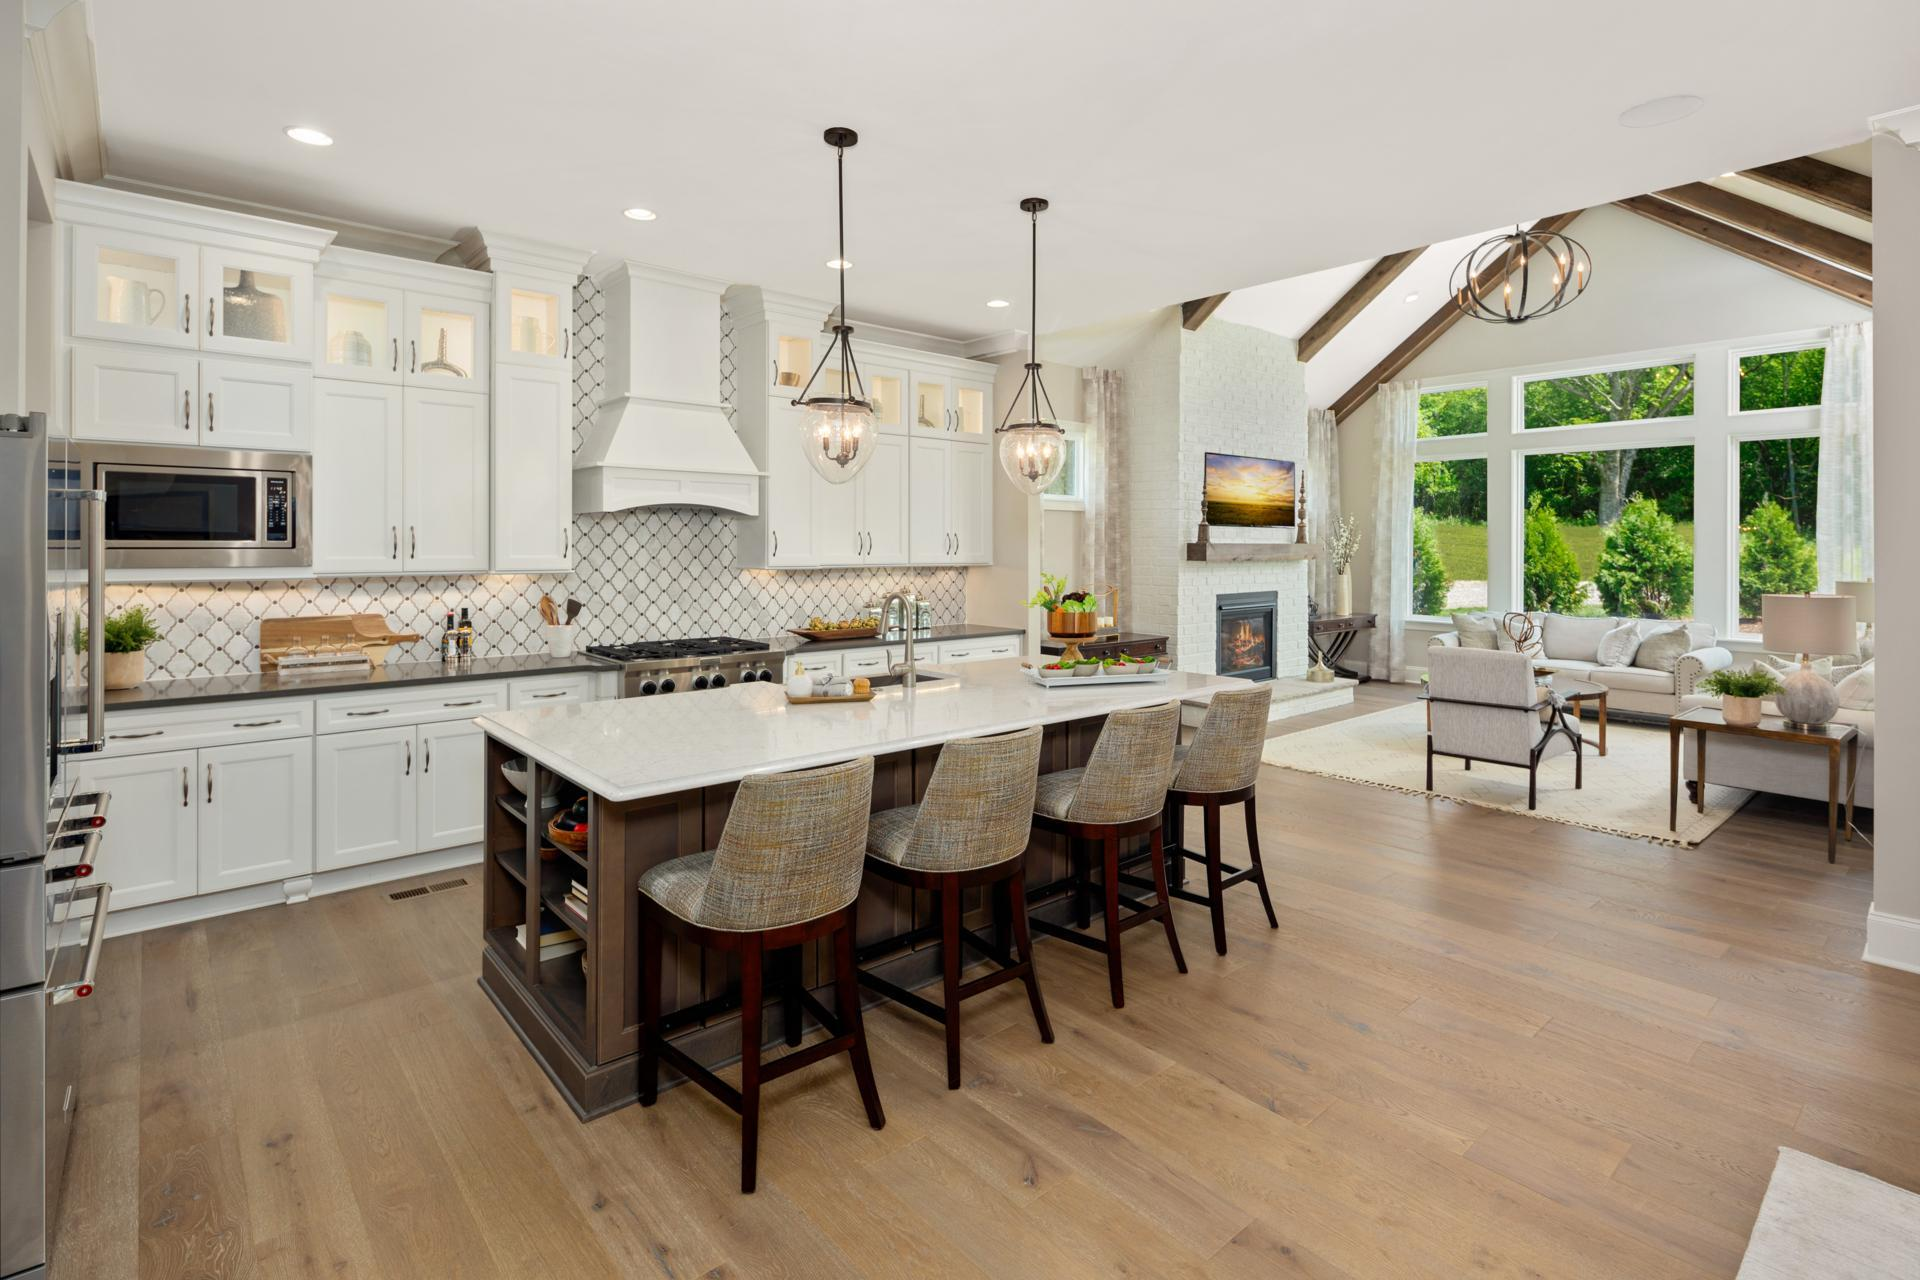 'Whistle Stop Farms' by Drees Homes in Nashville